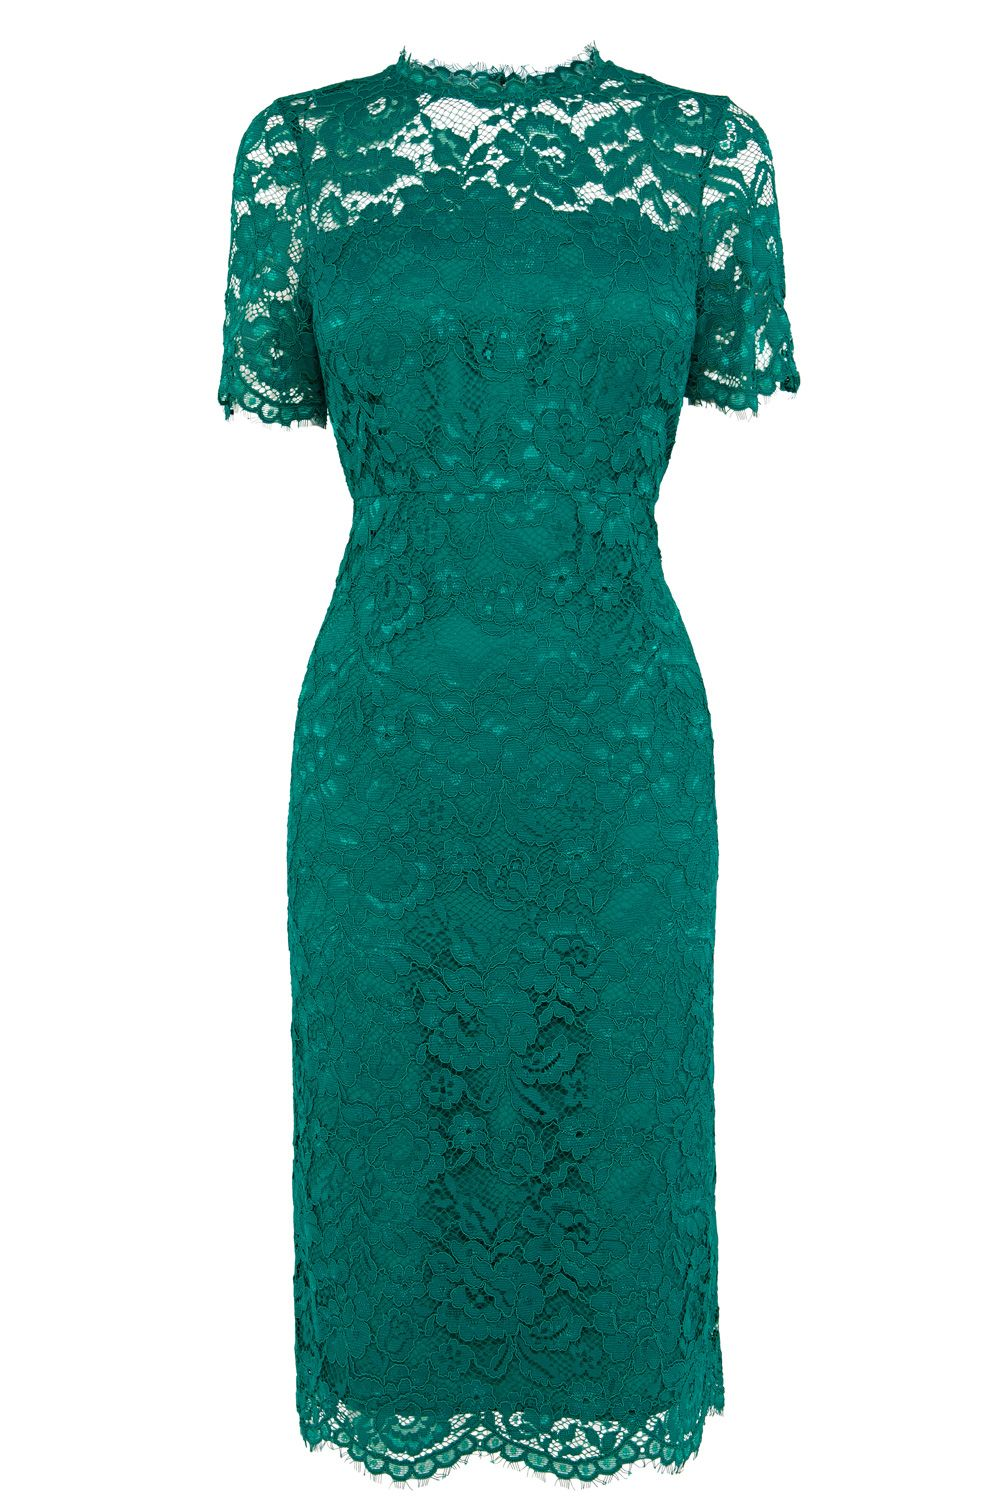 Lace Dresses | Greens CASSIA LACE DRESS | Coast Stores Limited ...